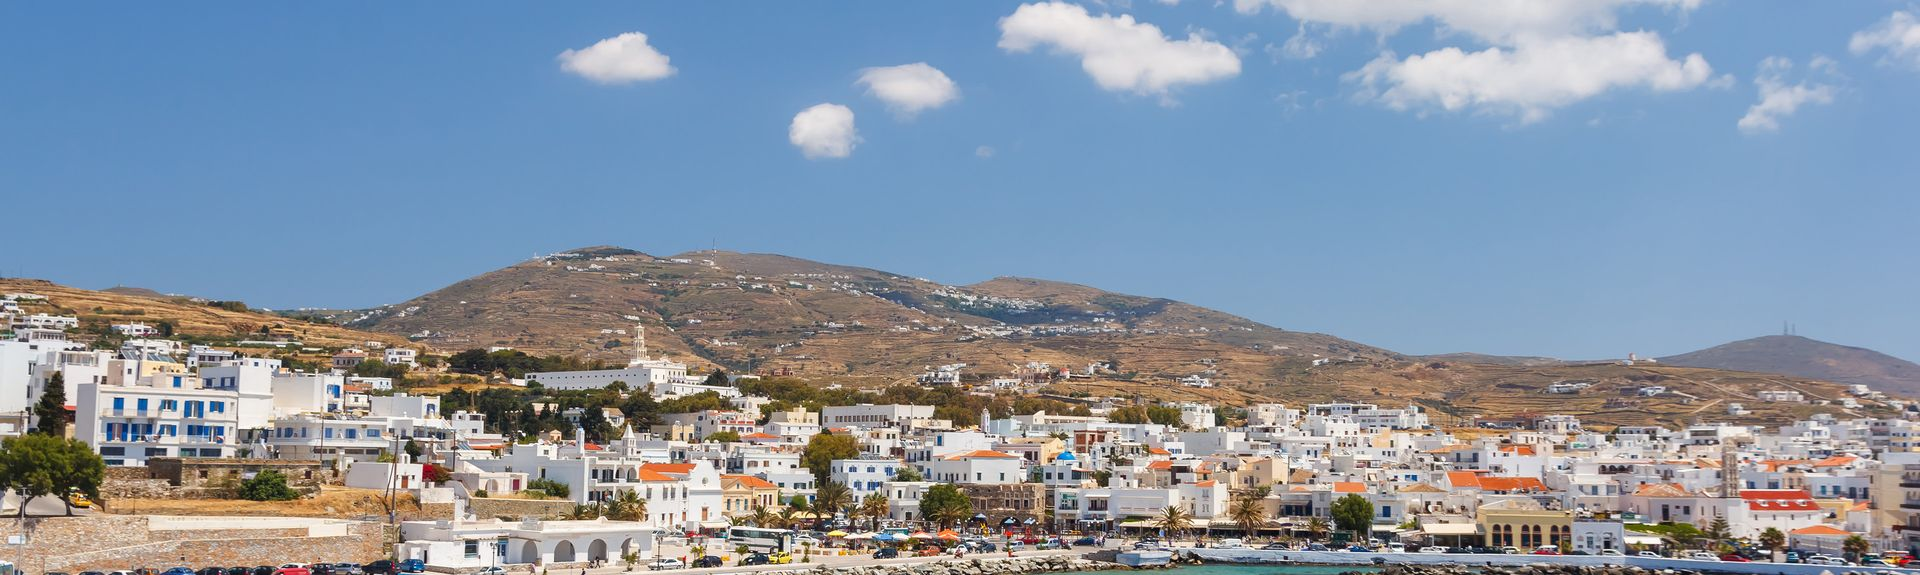 Tinos, South Aegean, Greece